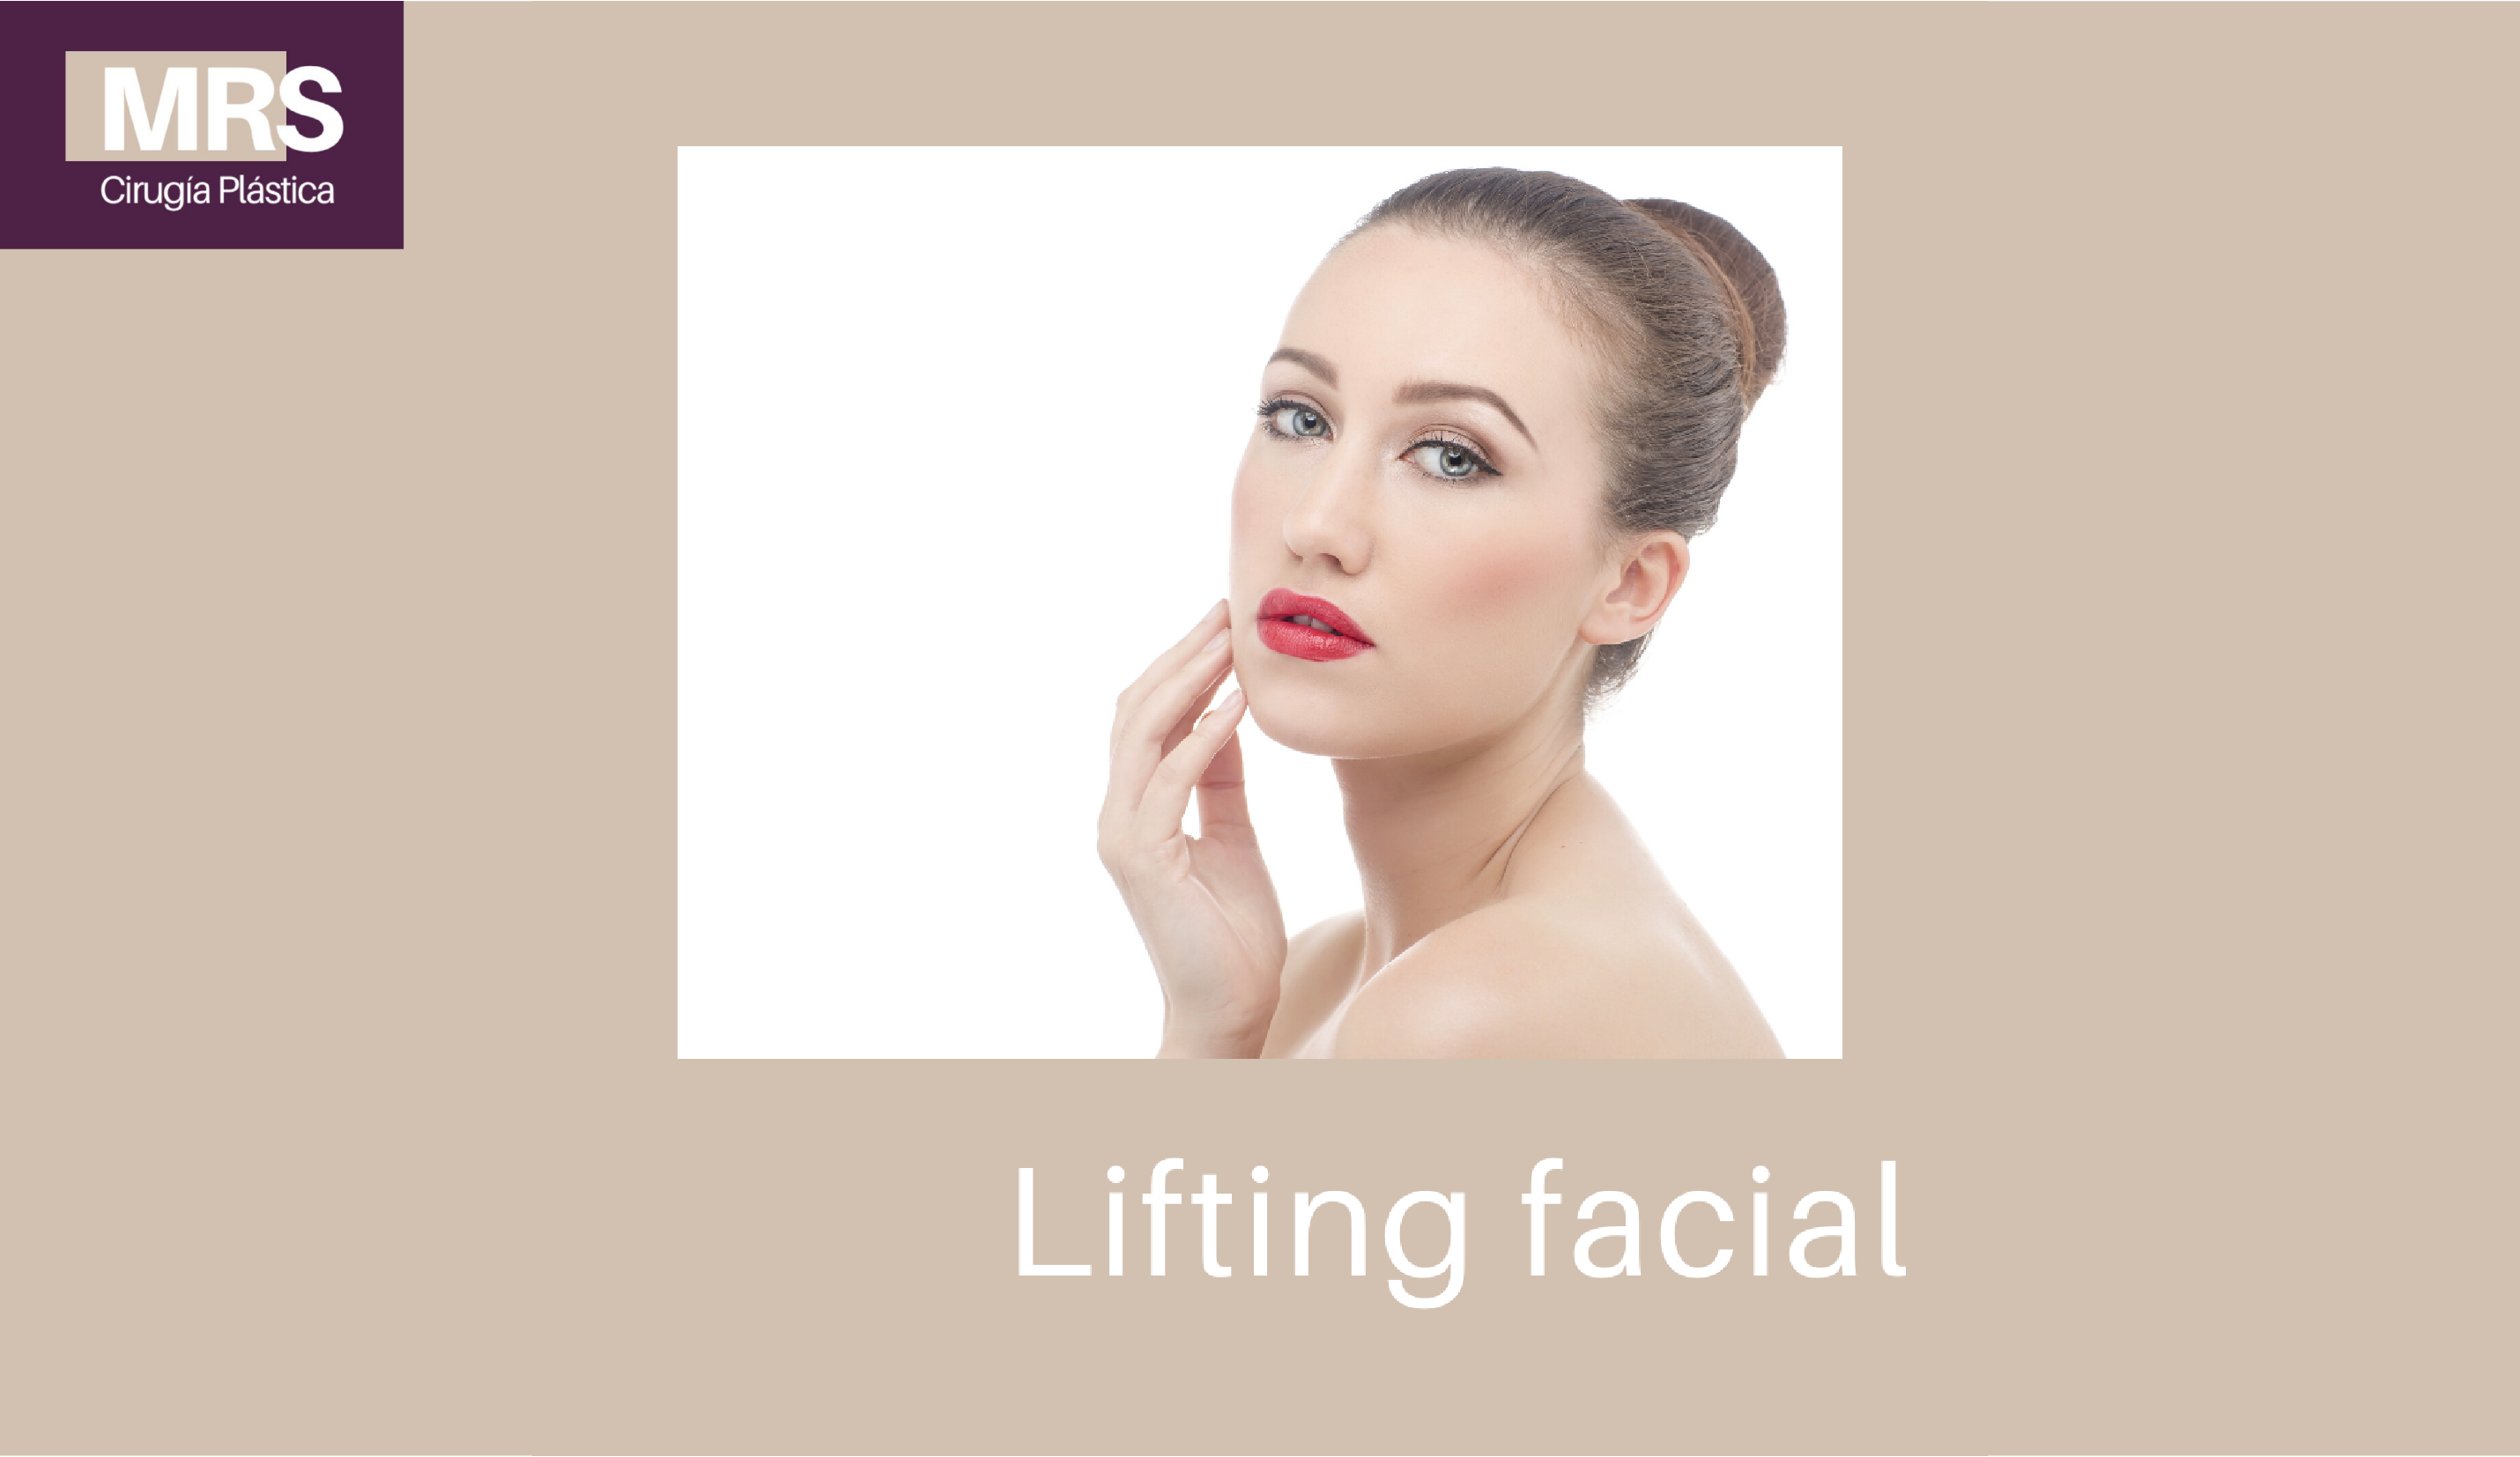 LIFTING FACIAL WEB-01